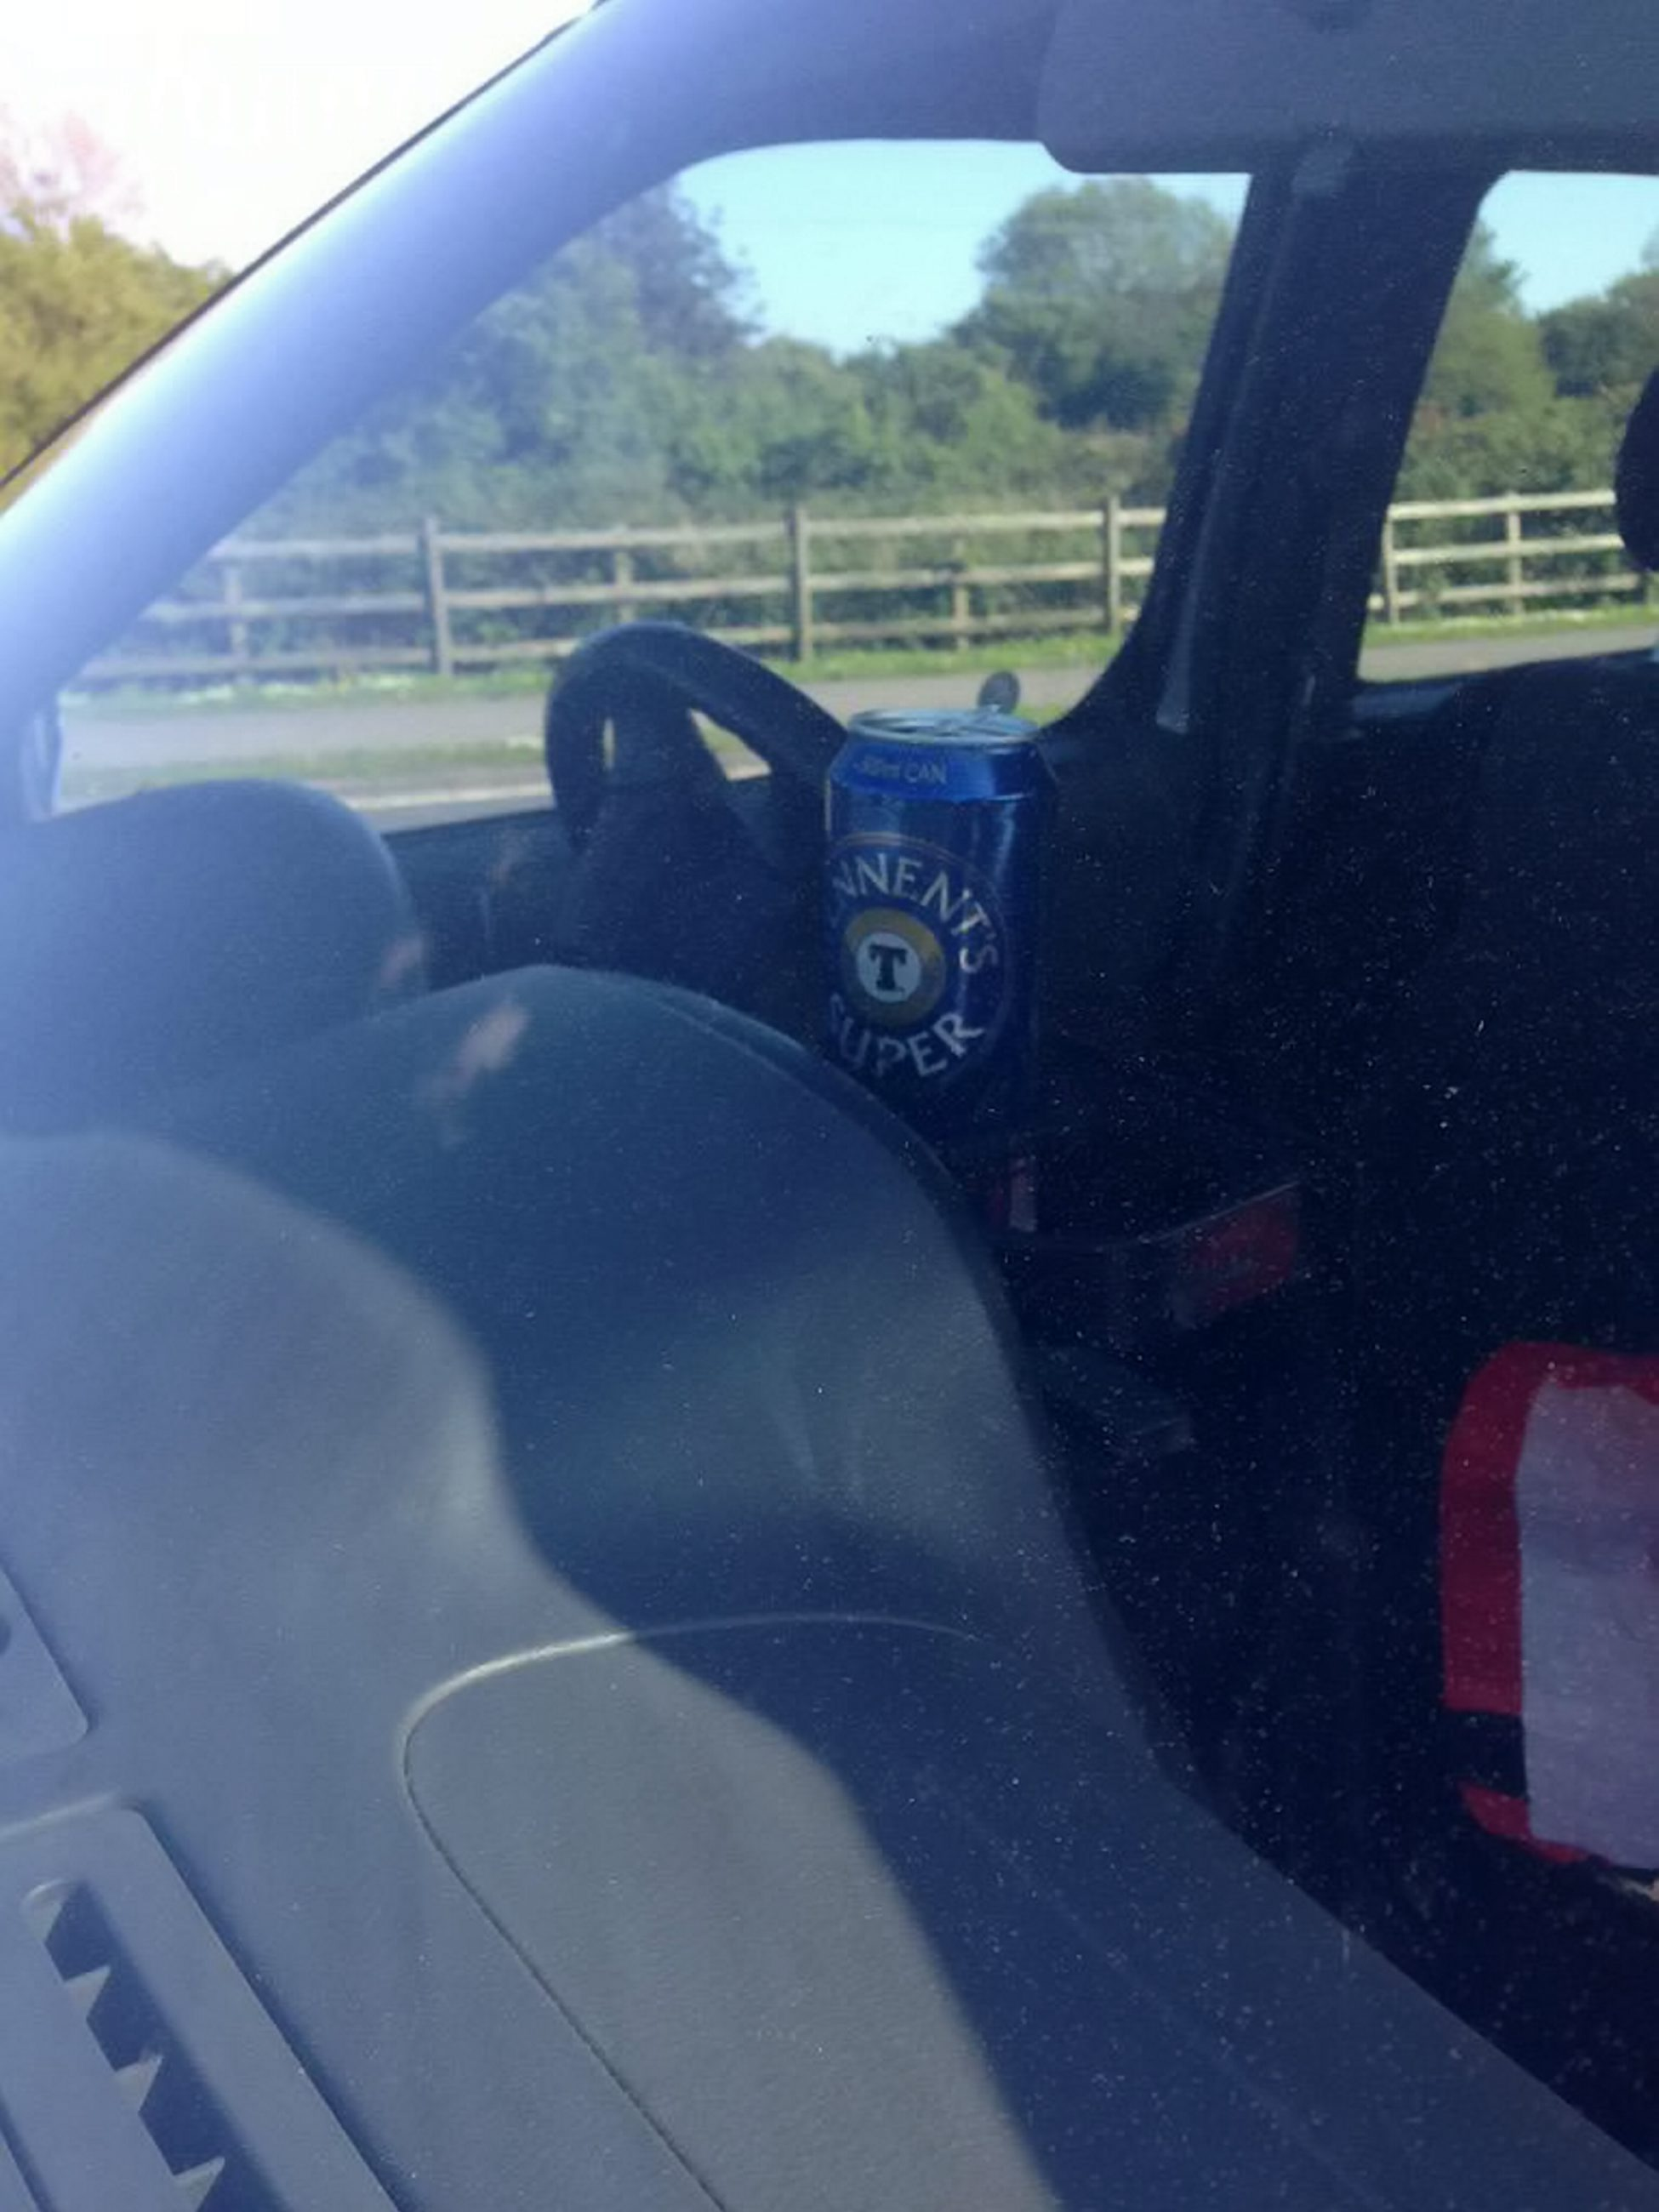 A man has been charged with drink-driving after police found him nearly twice the limit ñ with a can of TENNENTíS SUPER in his cup holder. See SWNS story SWDRUNK;  Police pulled the dopey driverís Nissan over after receiving a tip-off from a member of the public that he was drink-driving on Saturday afternoon. When police caught up with him in Eastbourne, East Sussex, they discovered the super strength, 9 per cent lager beside his steering wheel. The man in his 60s was arrested and charged after a breathalyser revealed he was nearly double the legal limit to drive.